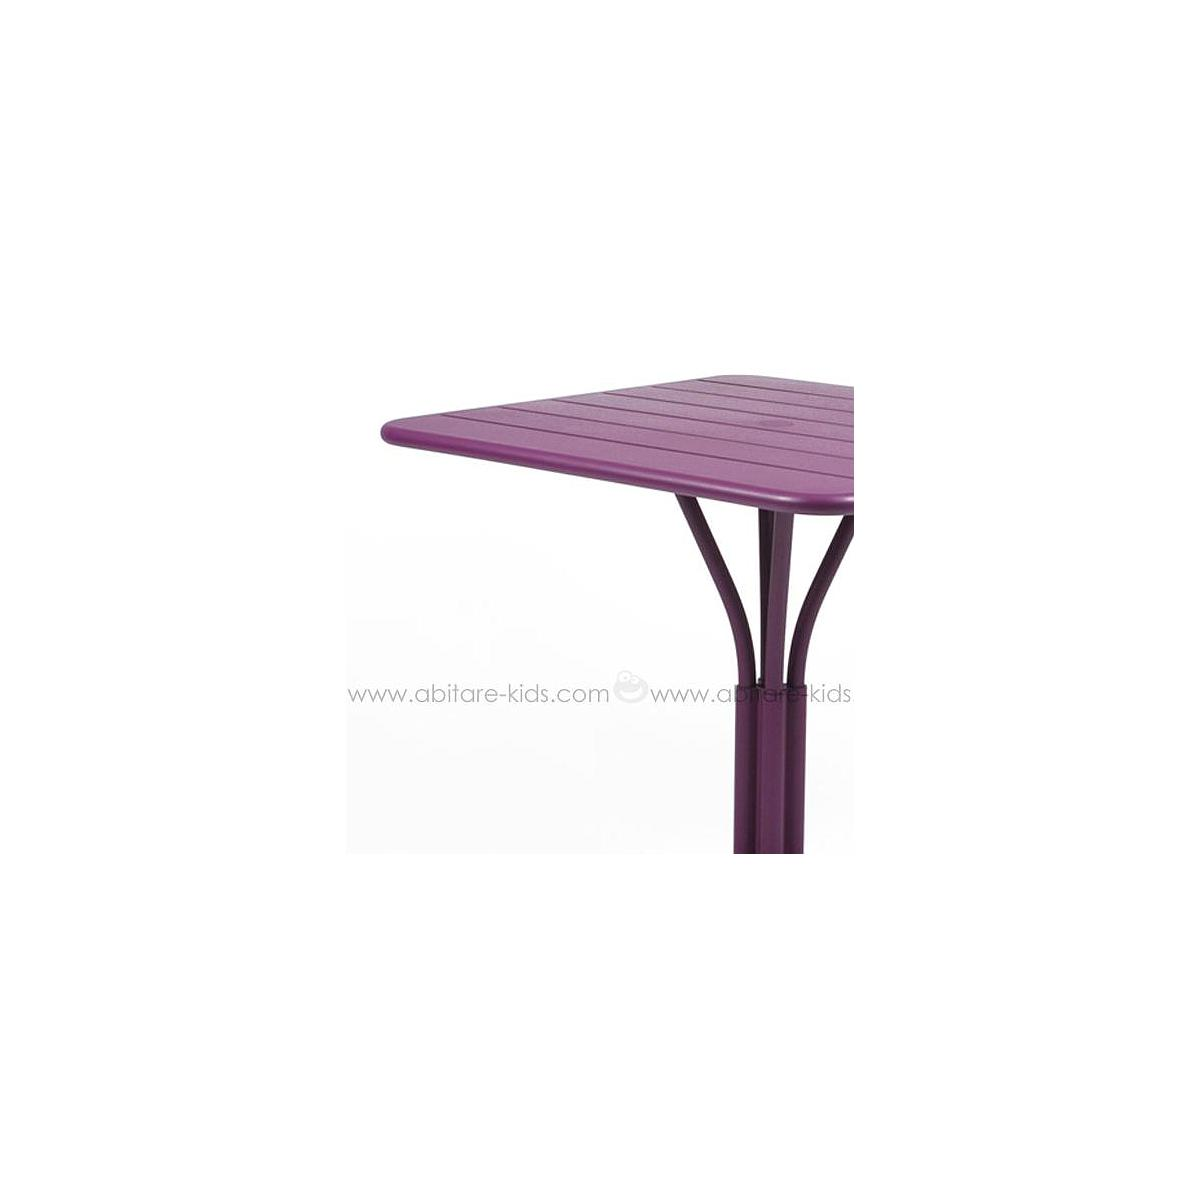 LUXEMBOURG by Fermob Table 80x80 cm aubergine